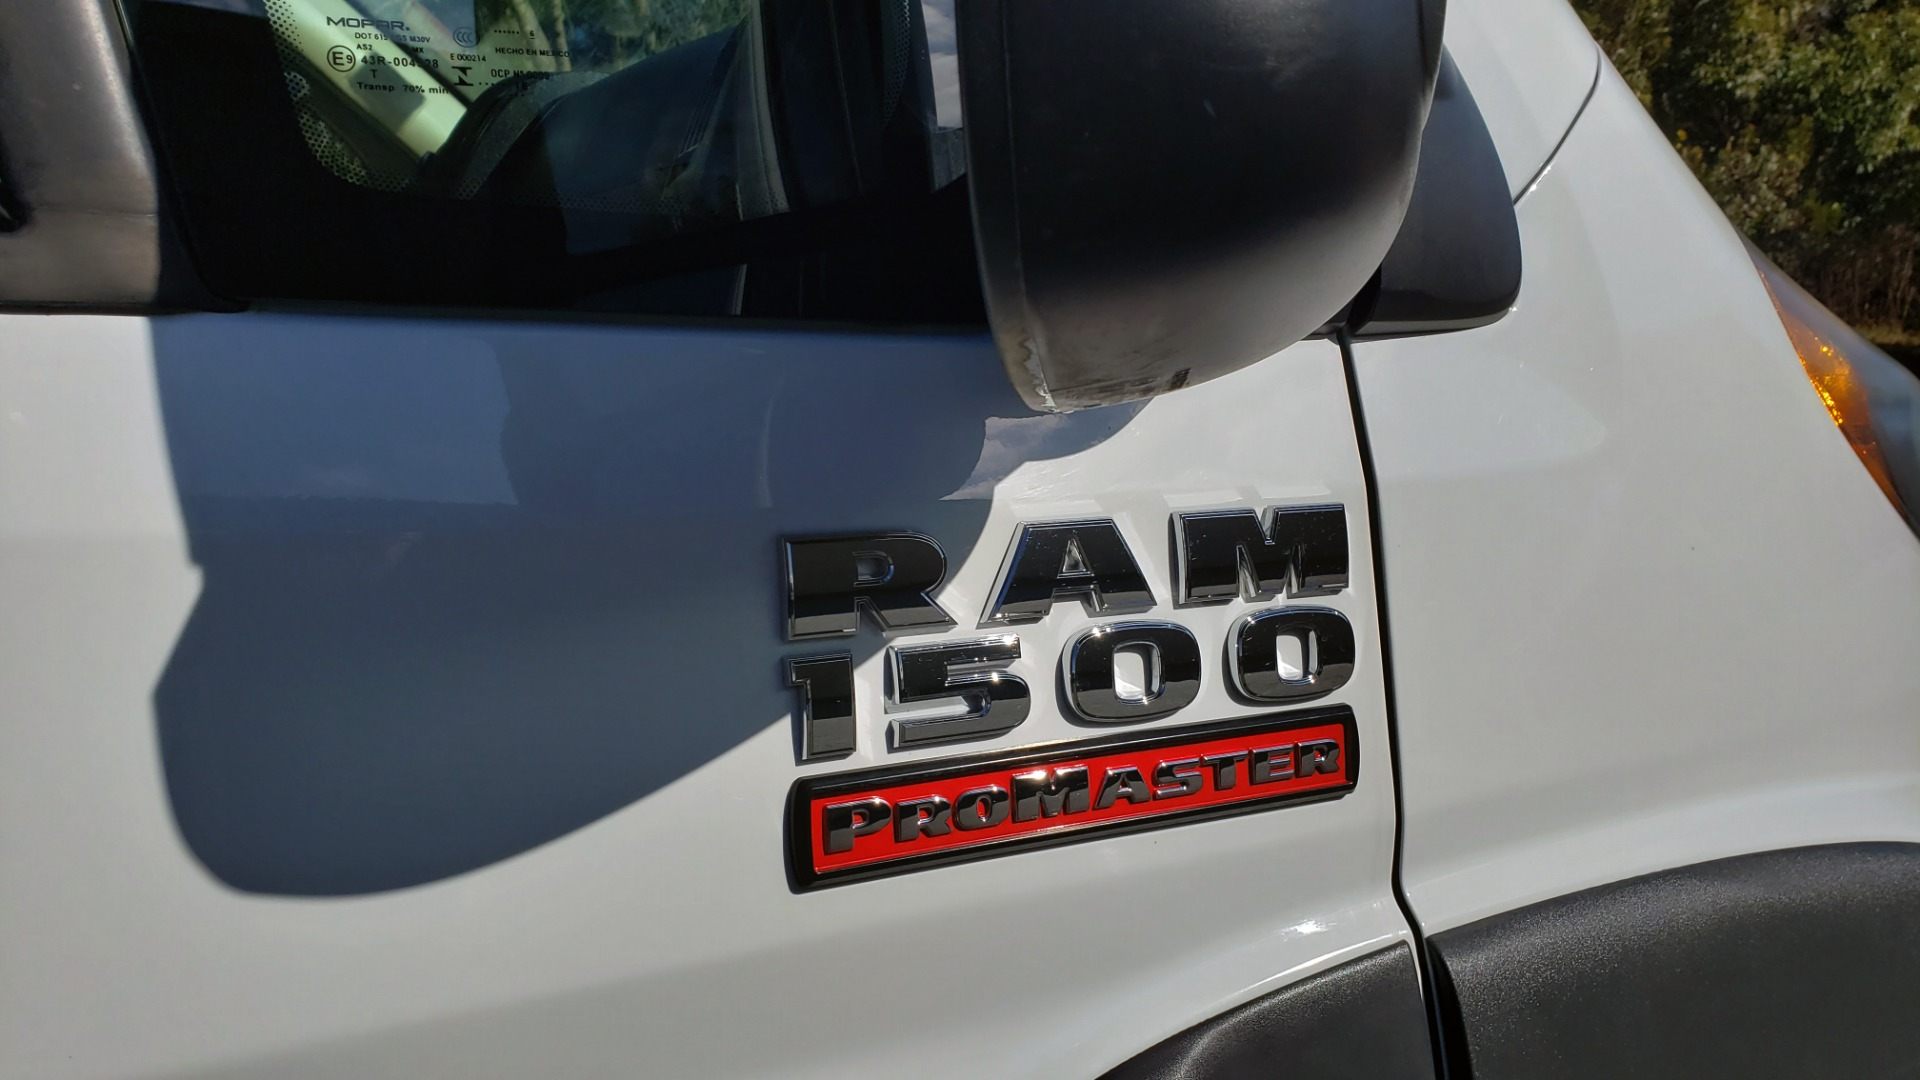 Used 2016 Ram PROMASTER CARGO VAN 136 WB / LOW ROOF / 3.6L V6 / 6-SPD AUTO / REARVIEW for sale $21,000 at Formula Imports in Charlotte NC 28227 11